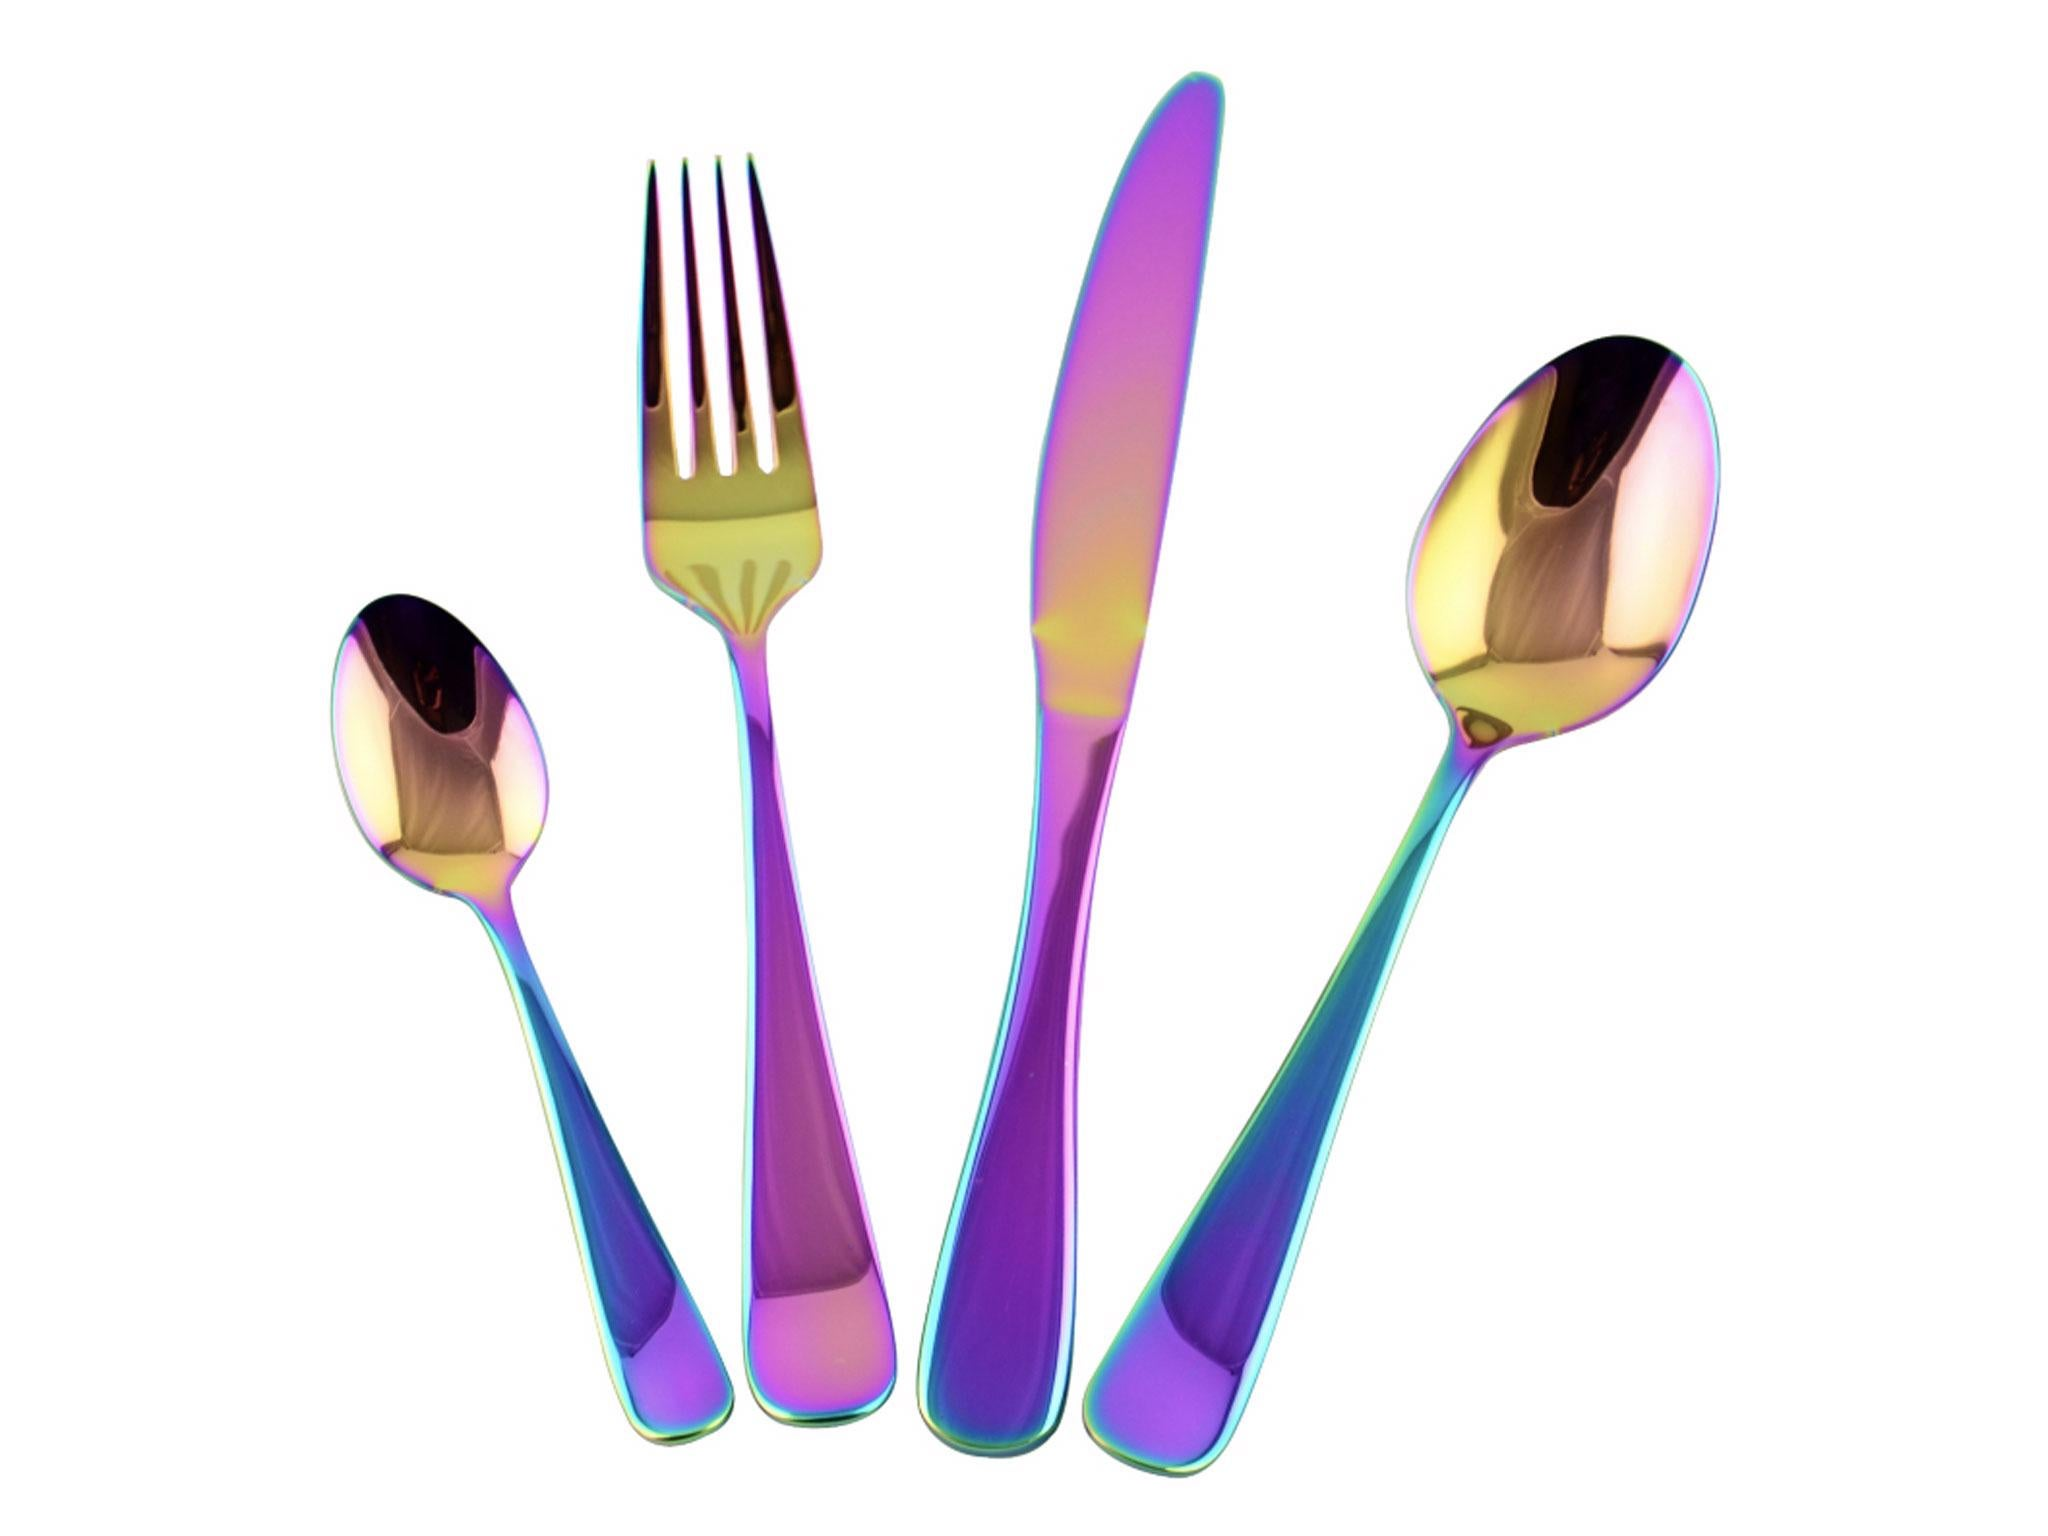 10 best cutlery sets | The Independent